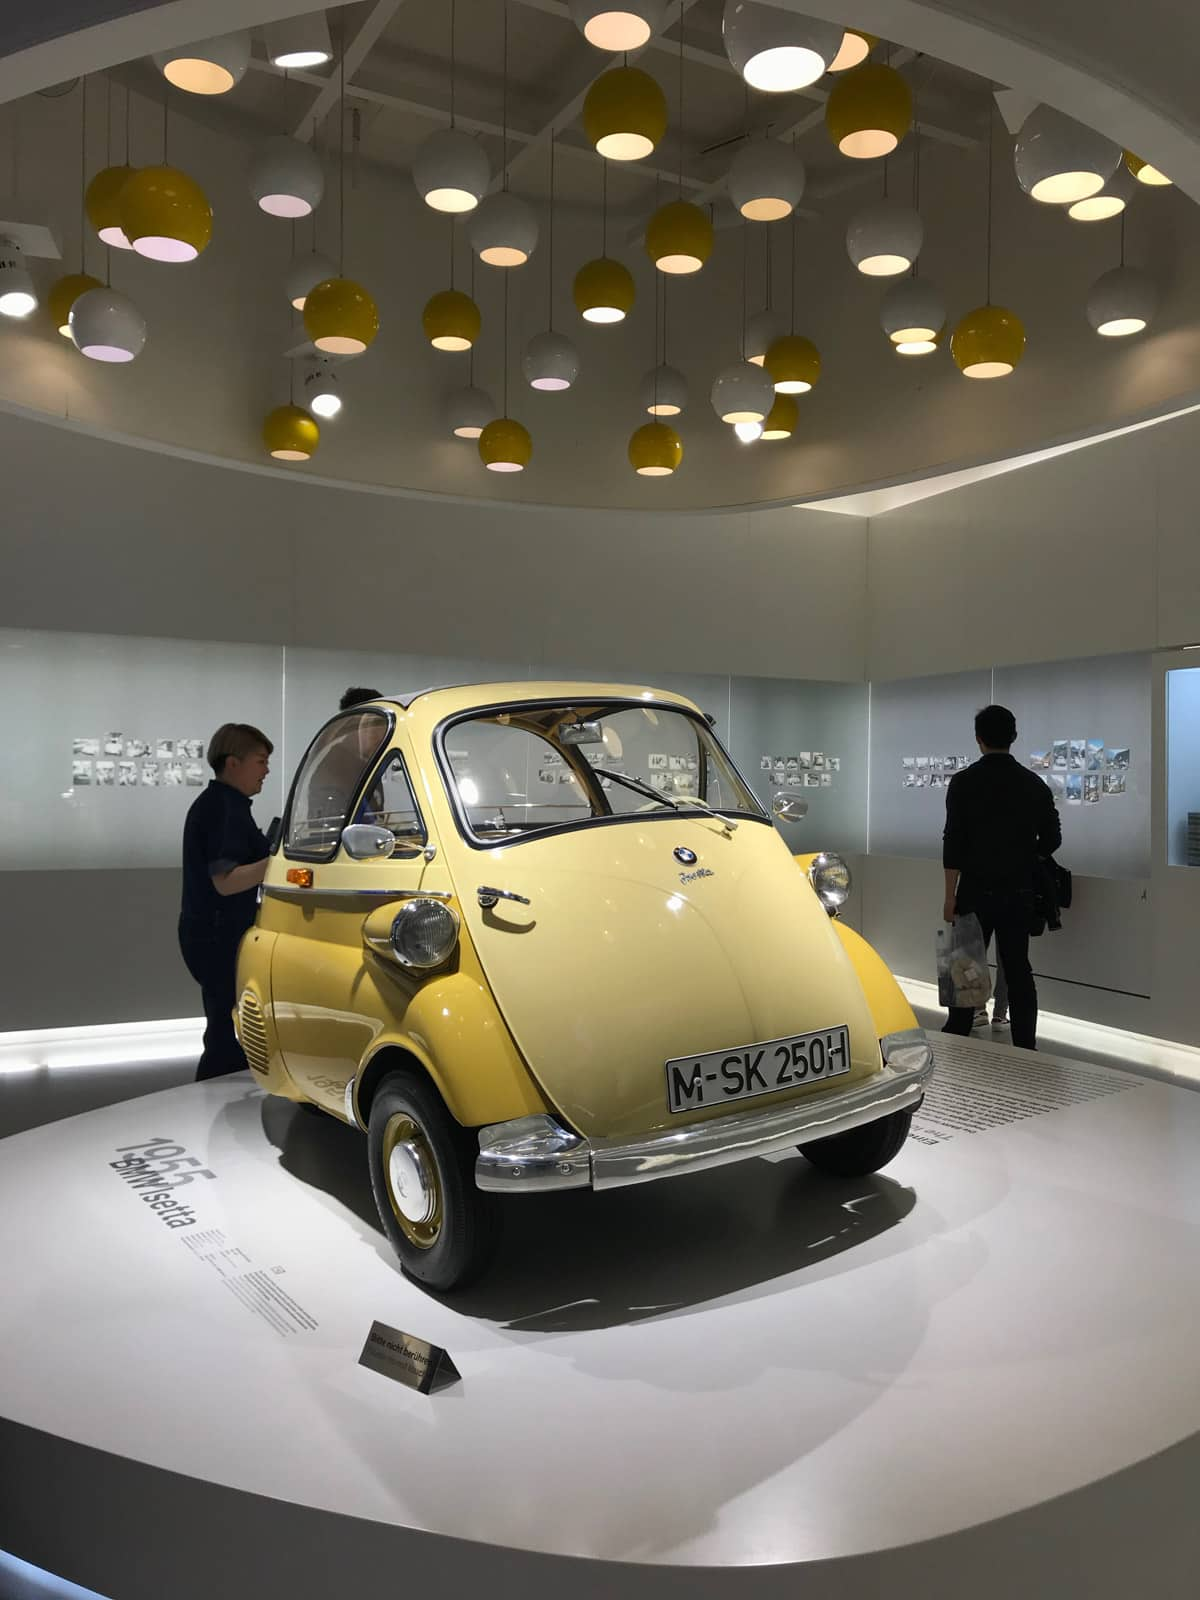 A small yellow car on display inside a museum